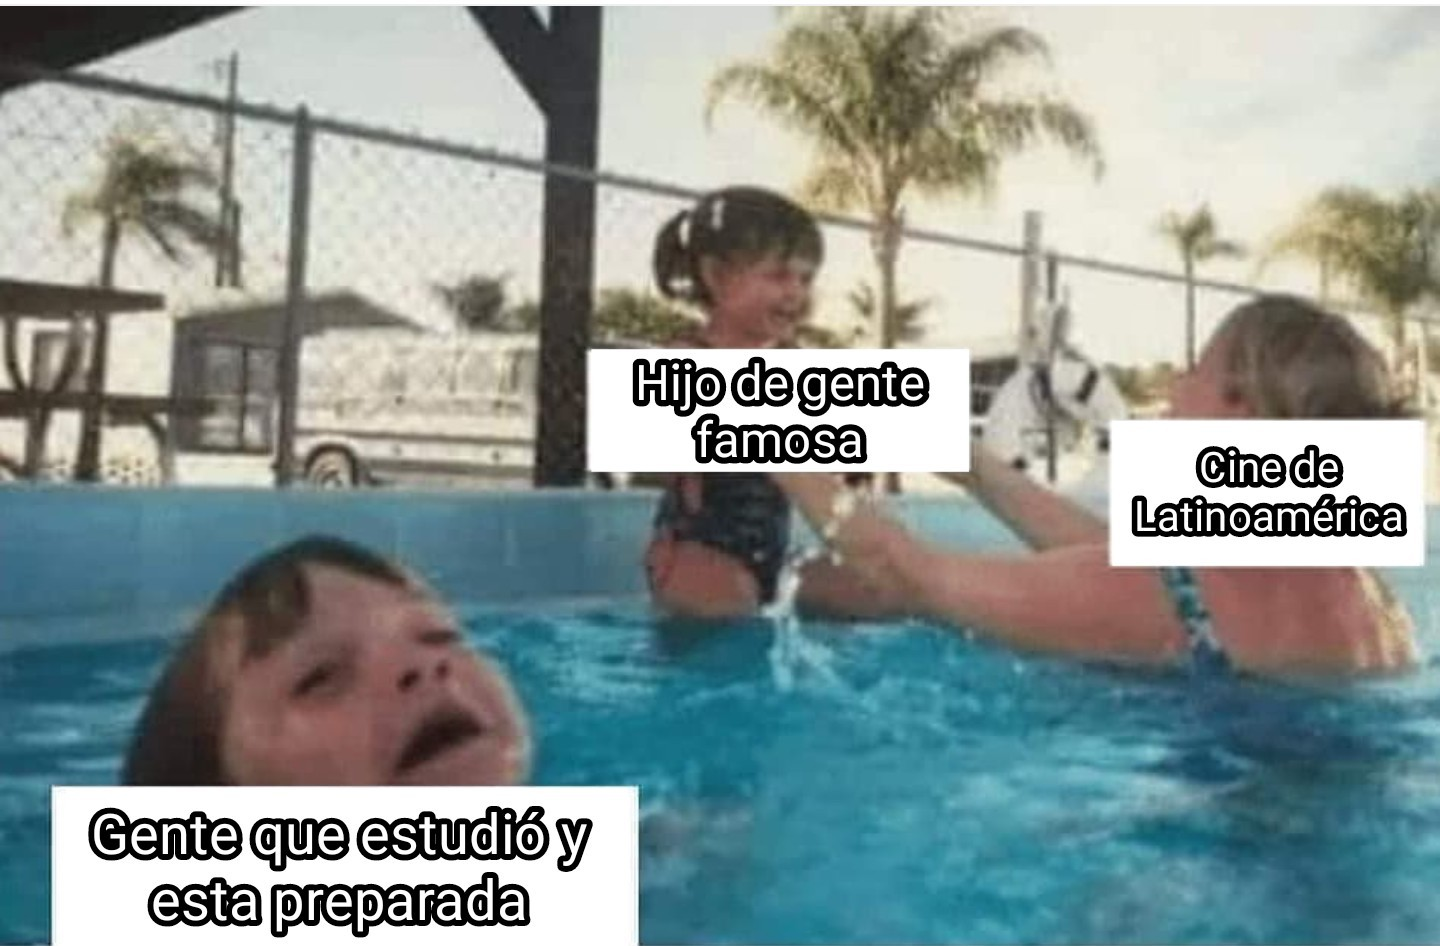 Tercermundismo be like - meme